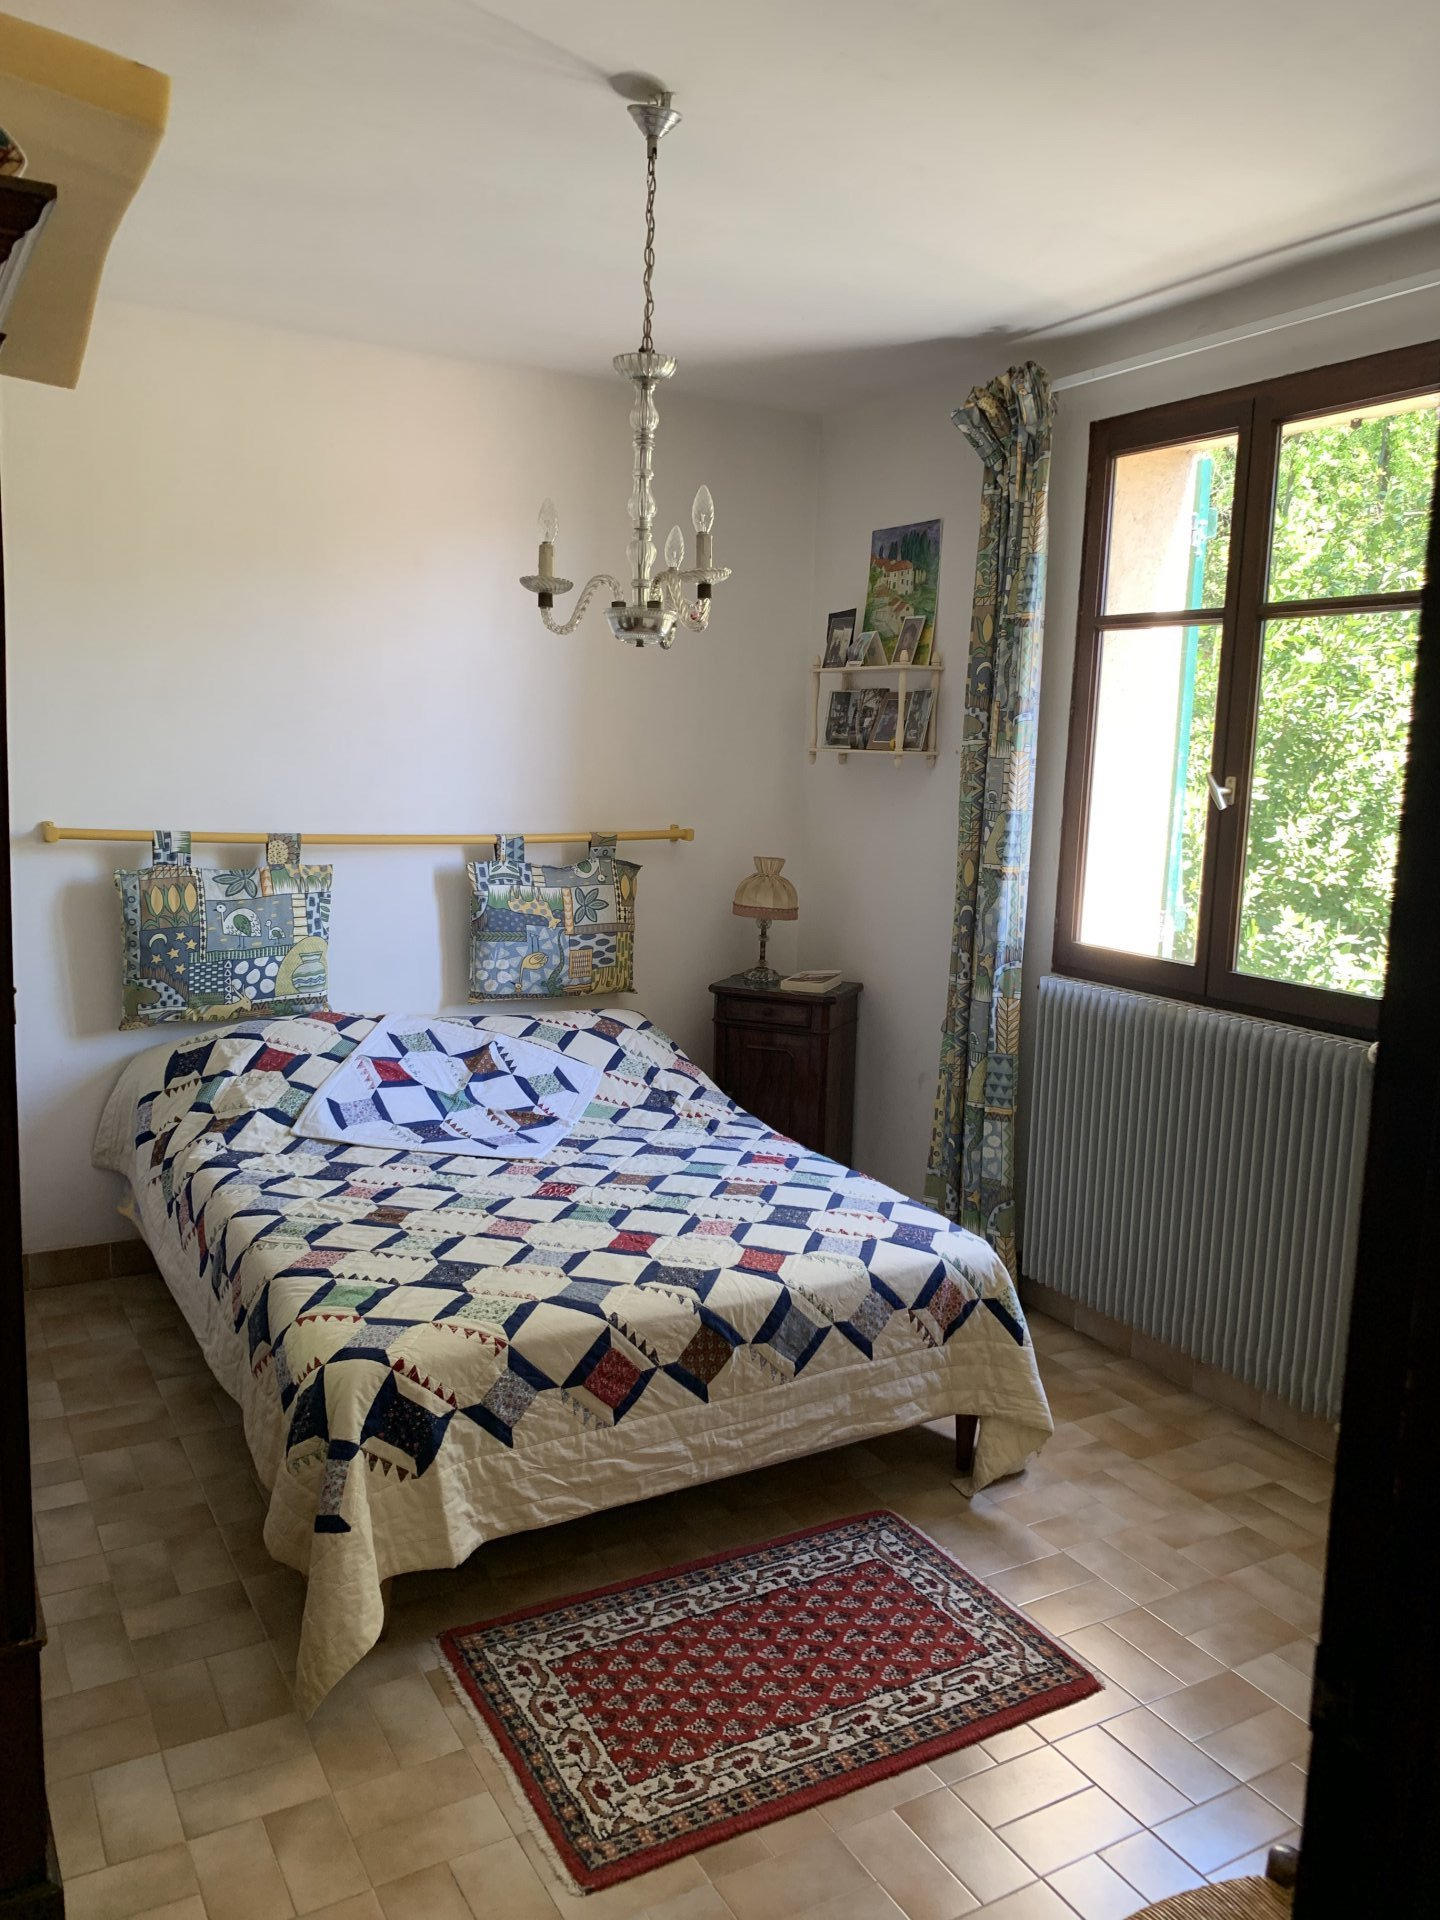 House in the heart of the village of 5 bedrooms with swimming pool and independent studio